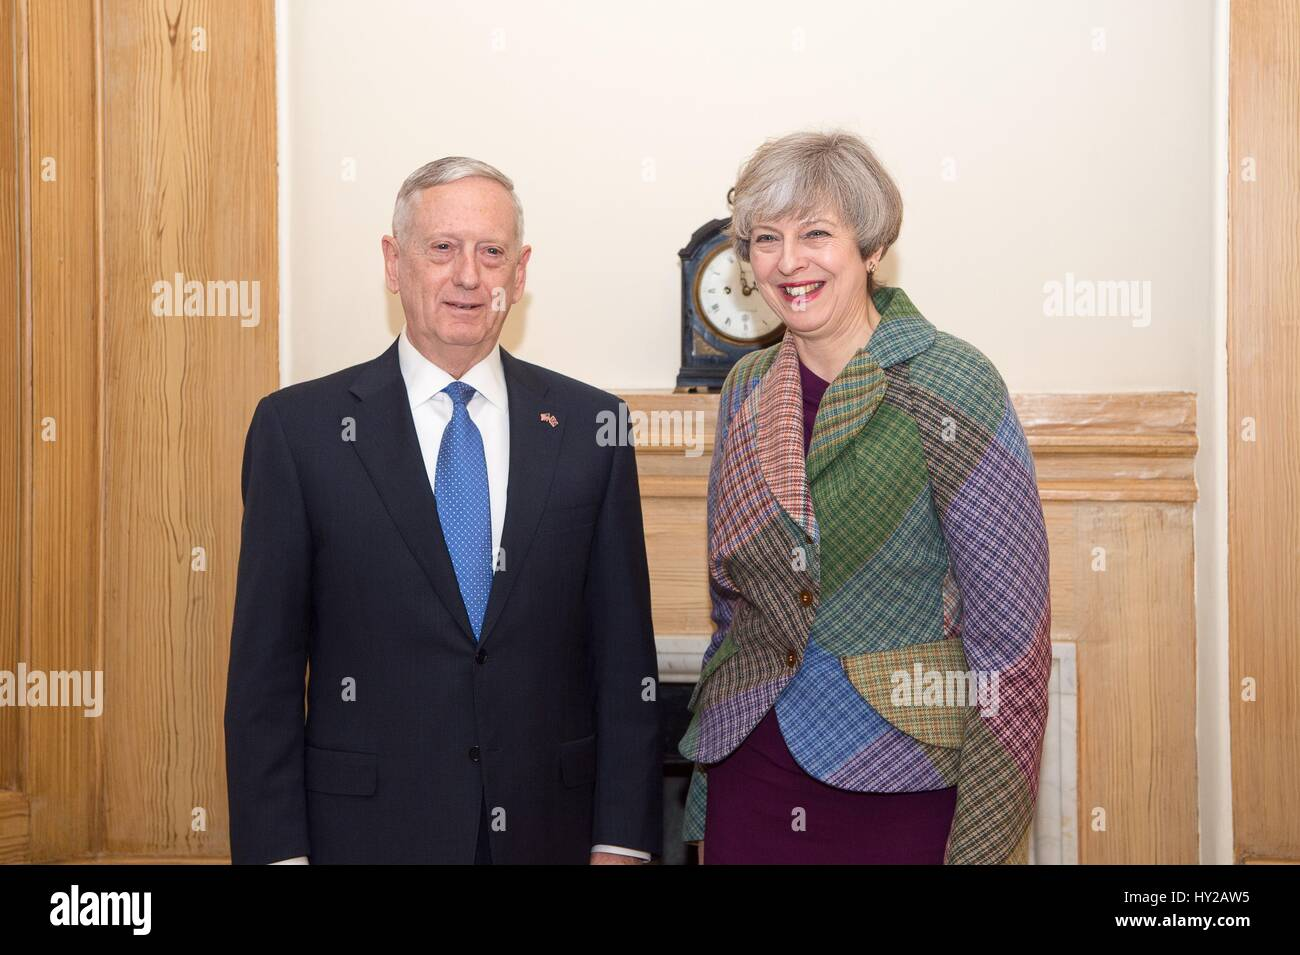 London, UK. 31st Mar, 2017. U.S. Secretary of Defense Jim Mattis during a meeting with British Prime Minister Theresa Stock Photo